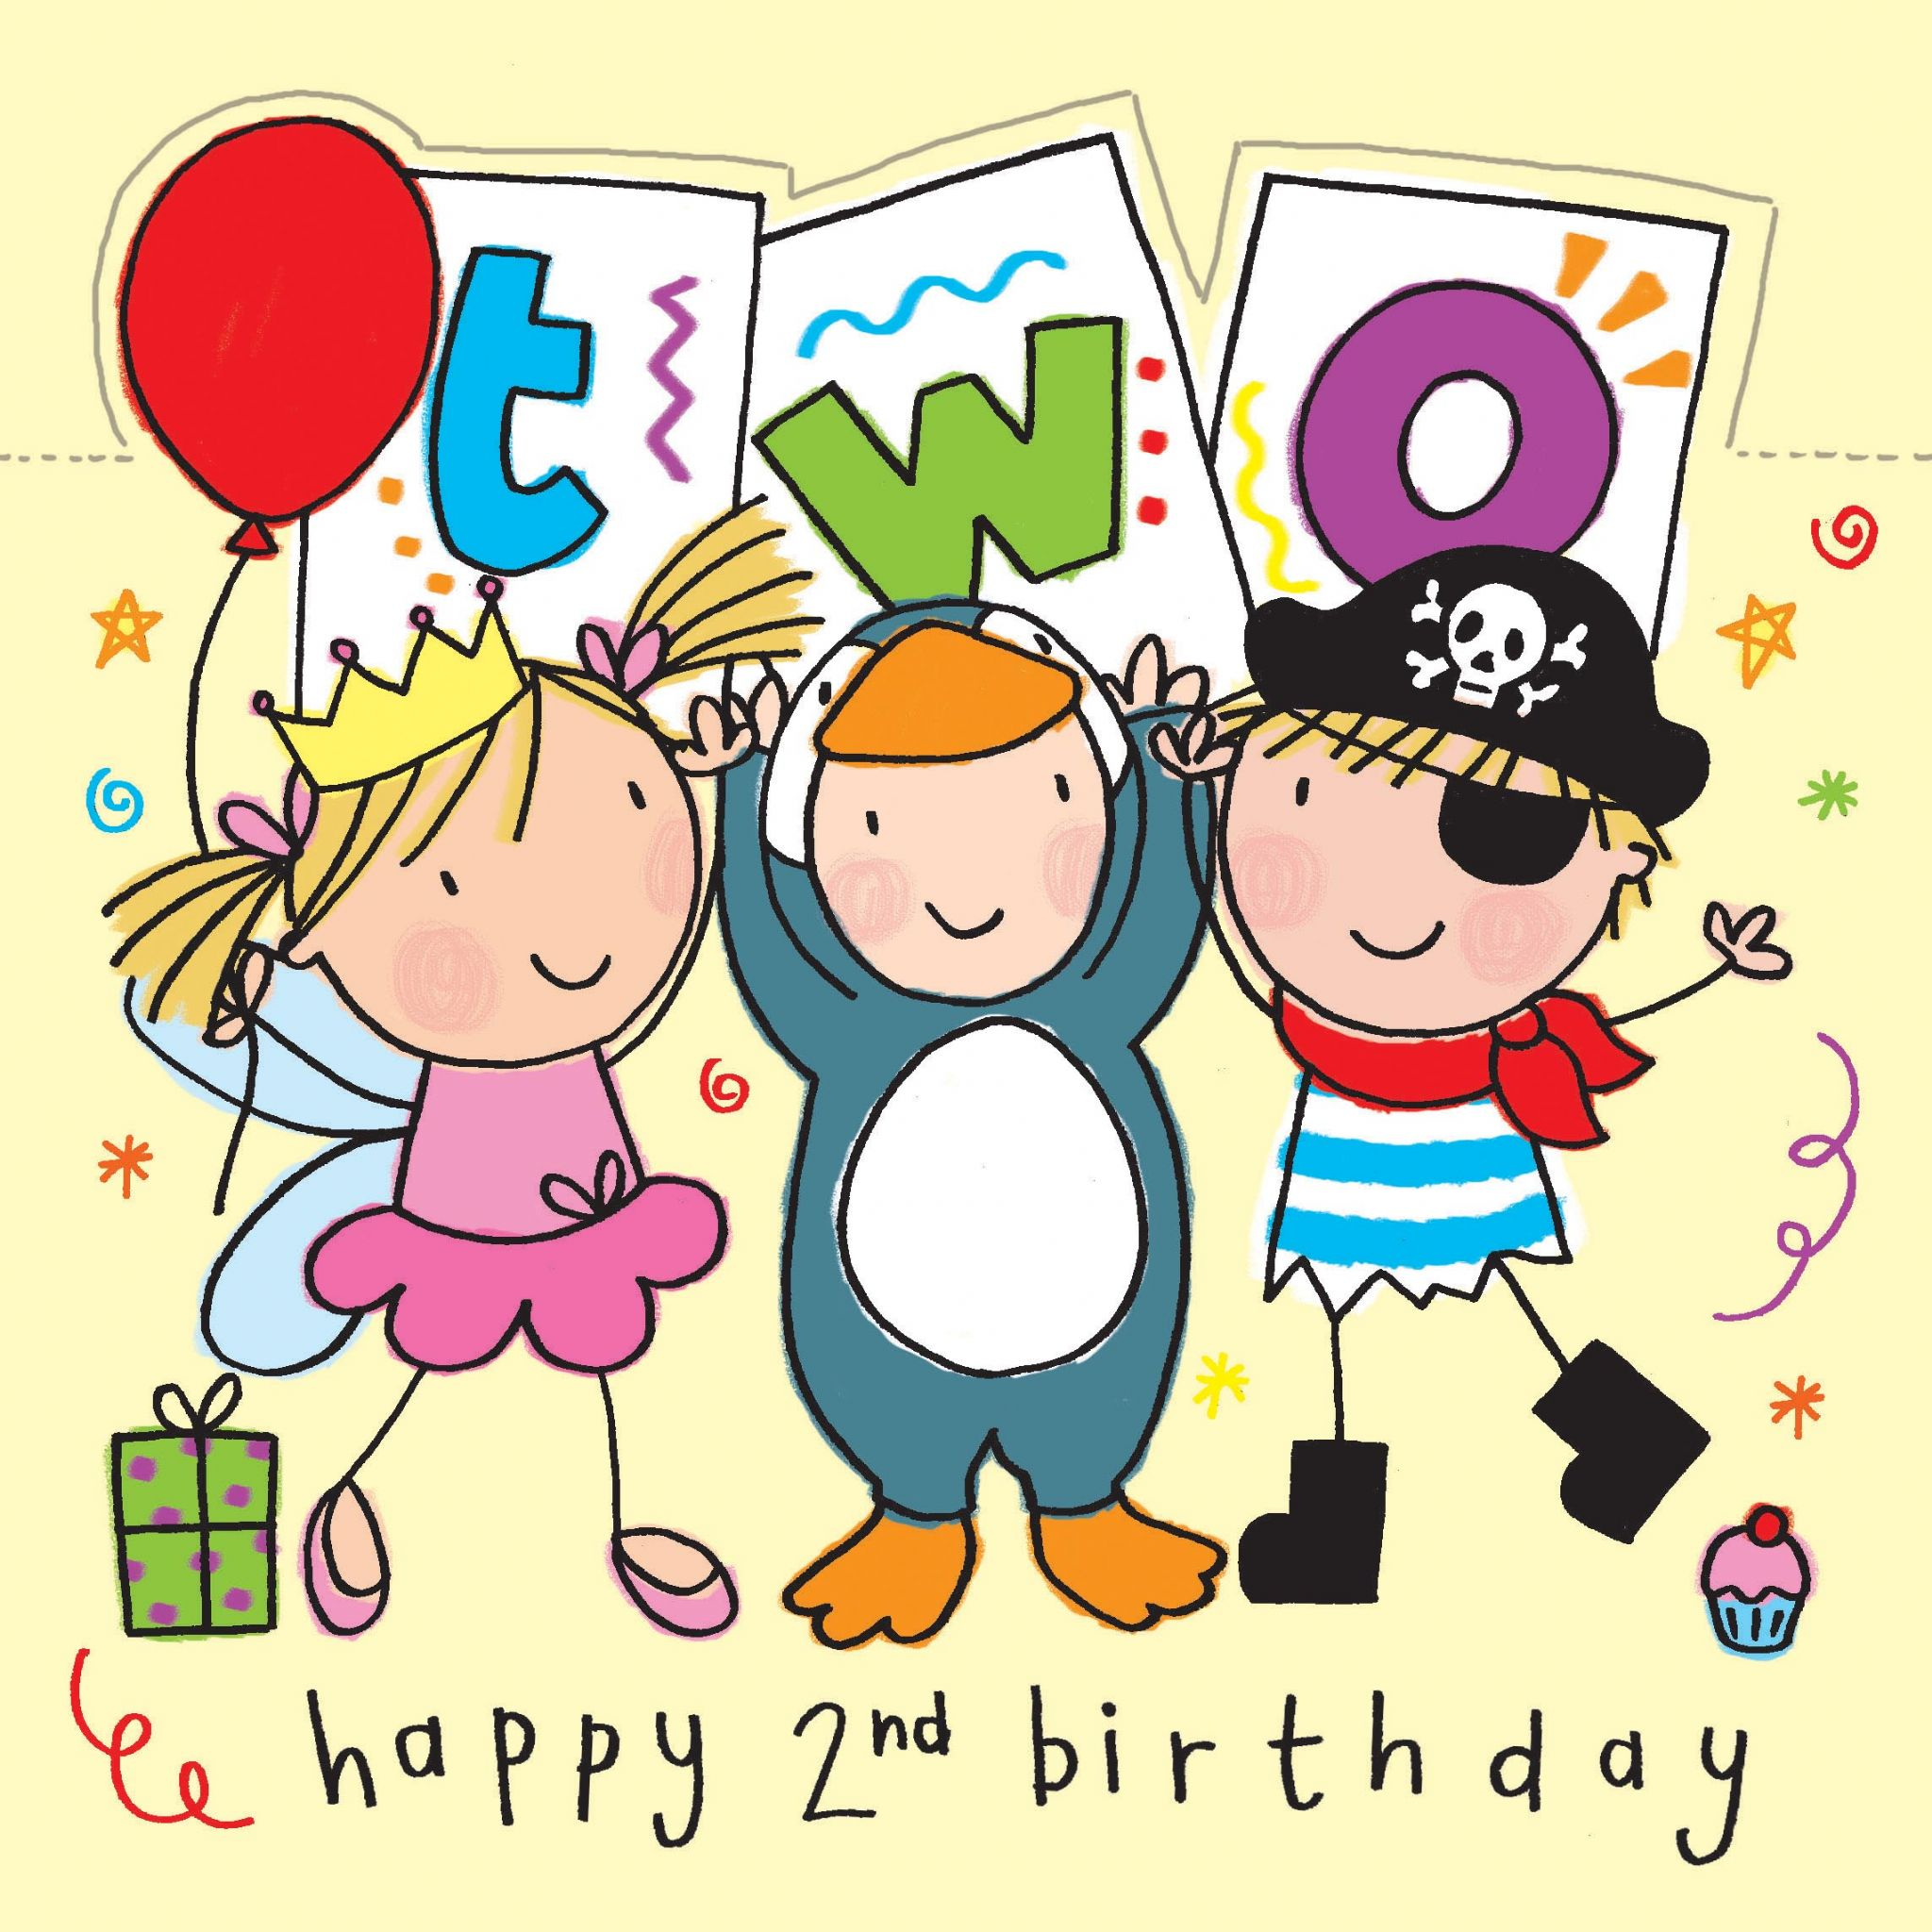 Age 2 Sparkly Birthday Card For Children With Pirate And Princess Tw426 4517 P